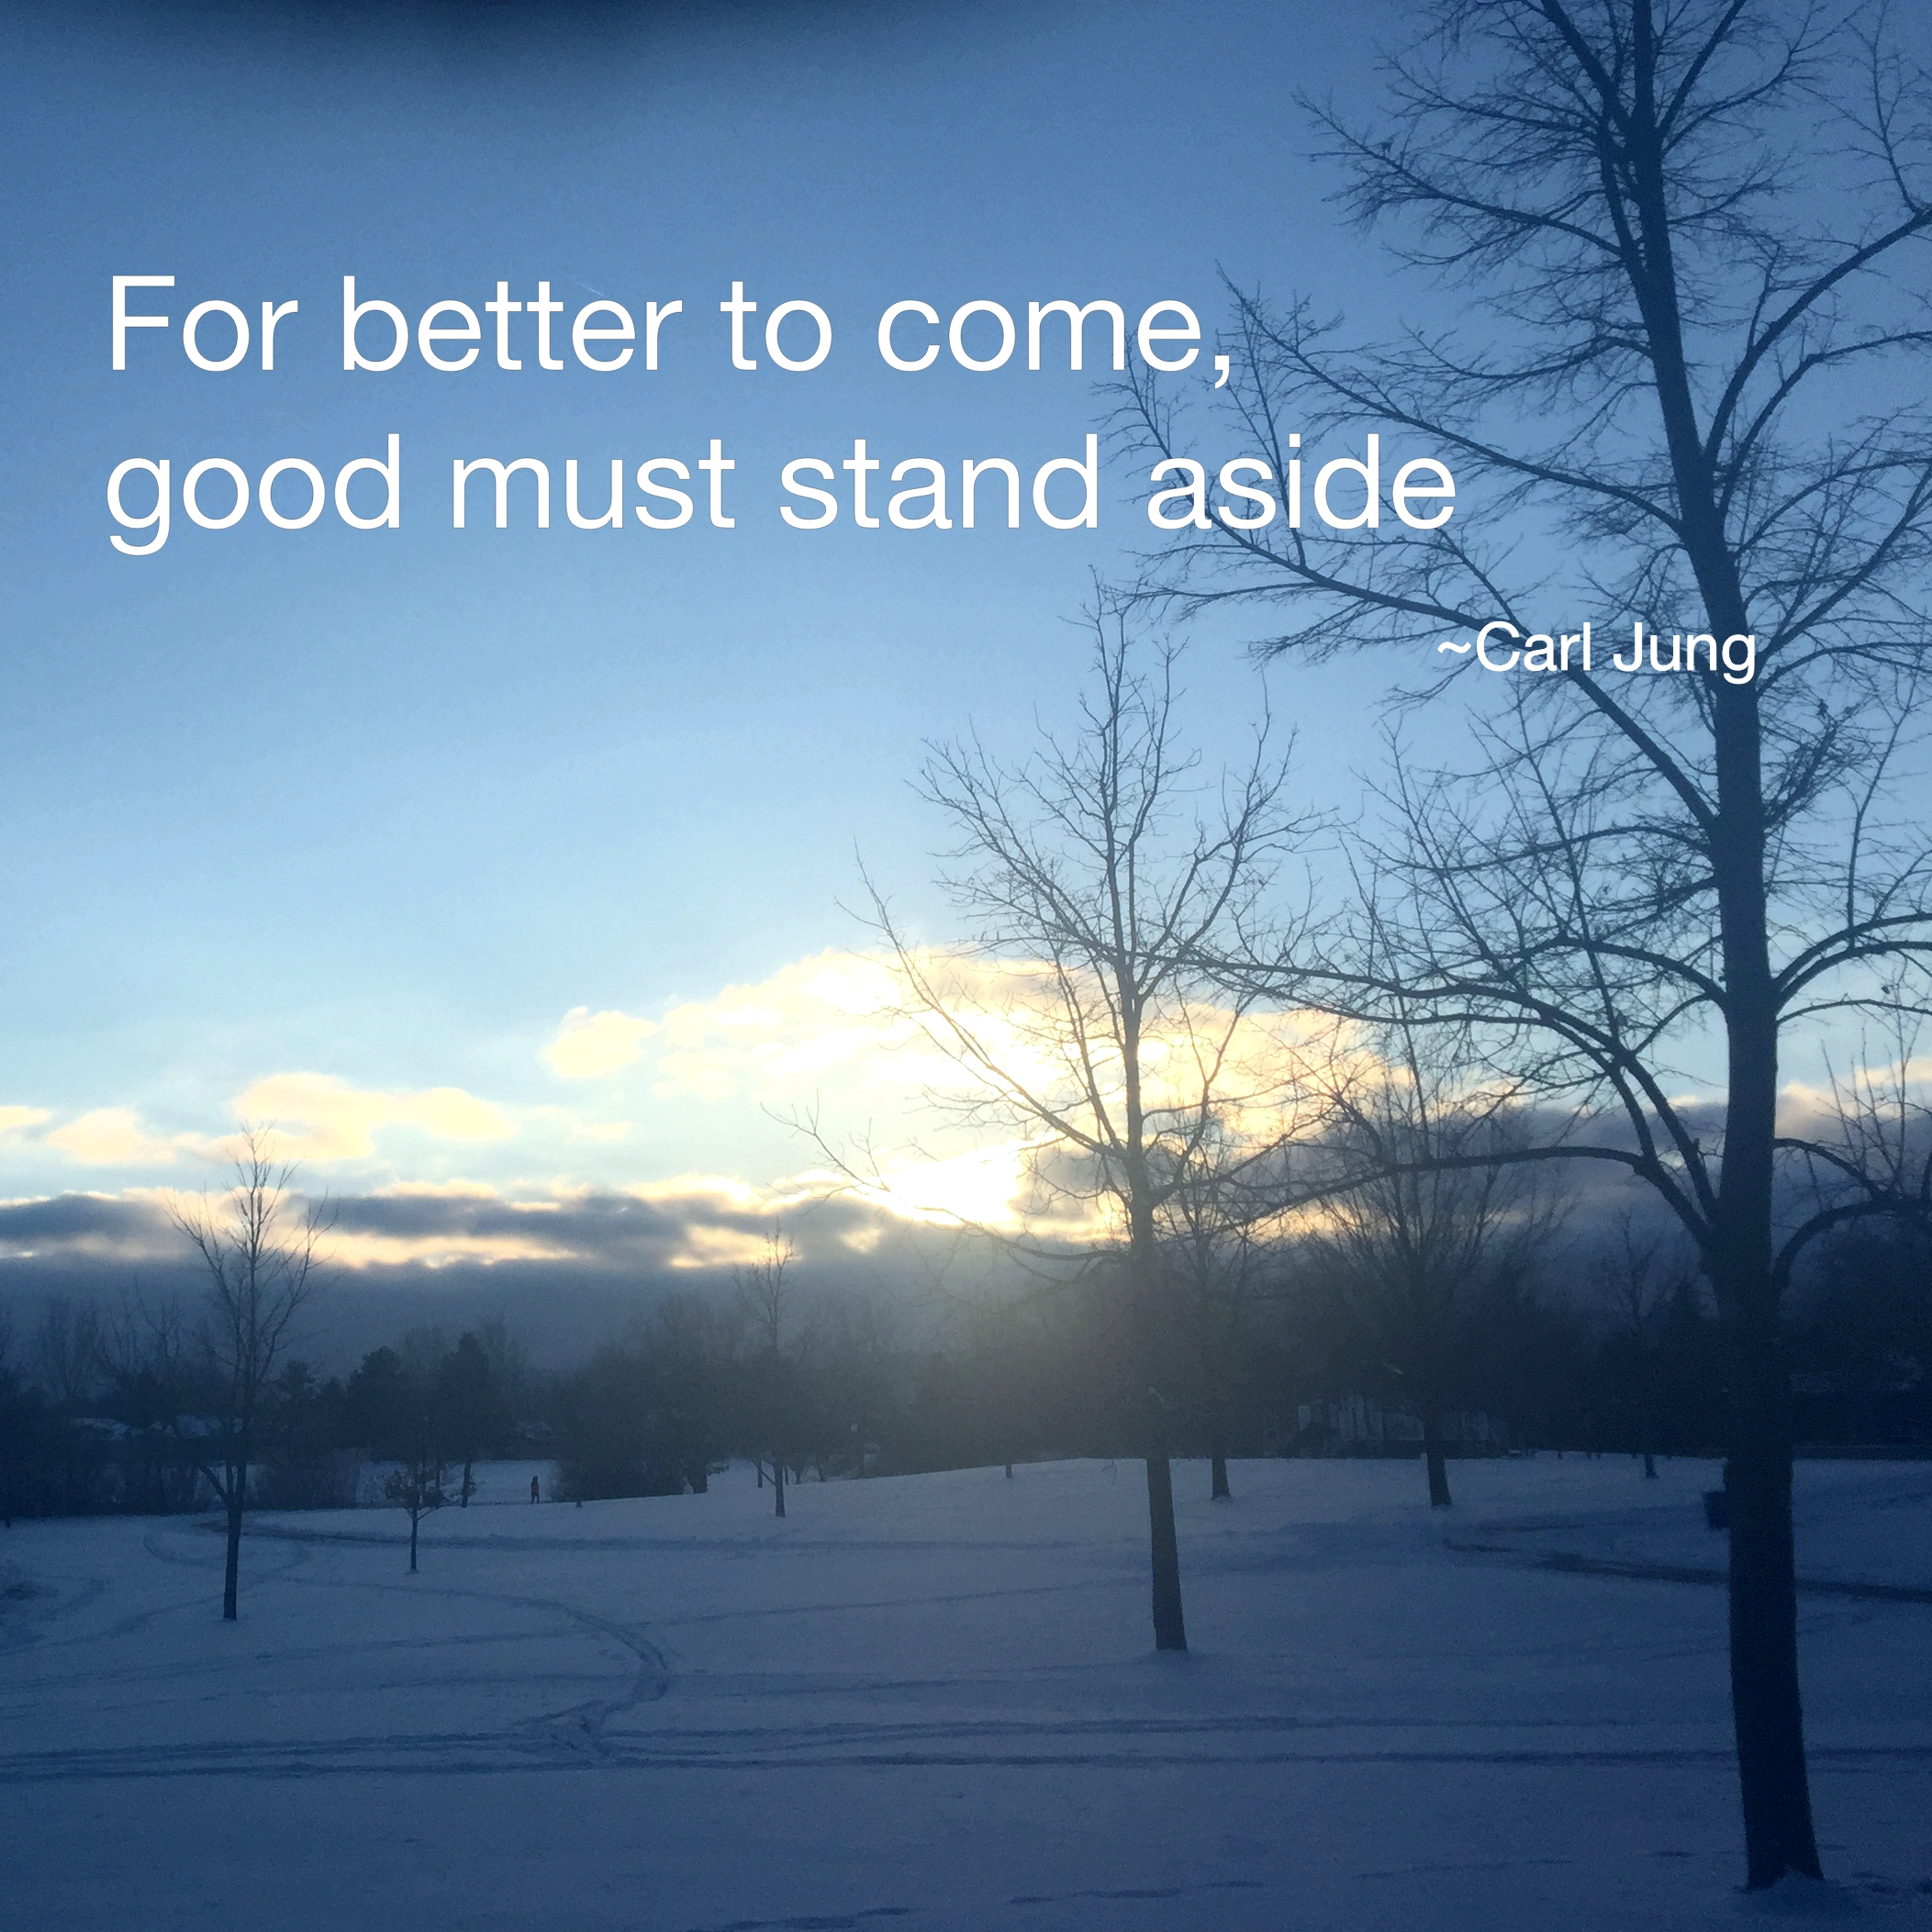 For better to come, good must stand aside. Carl Jung